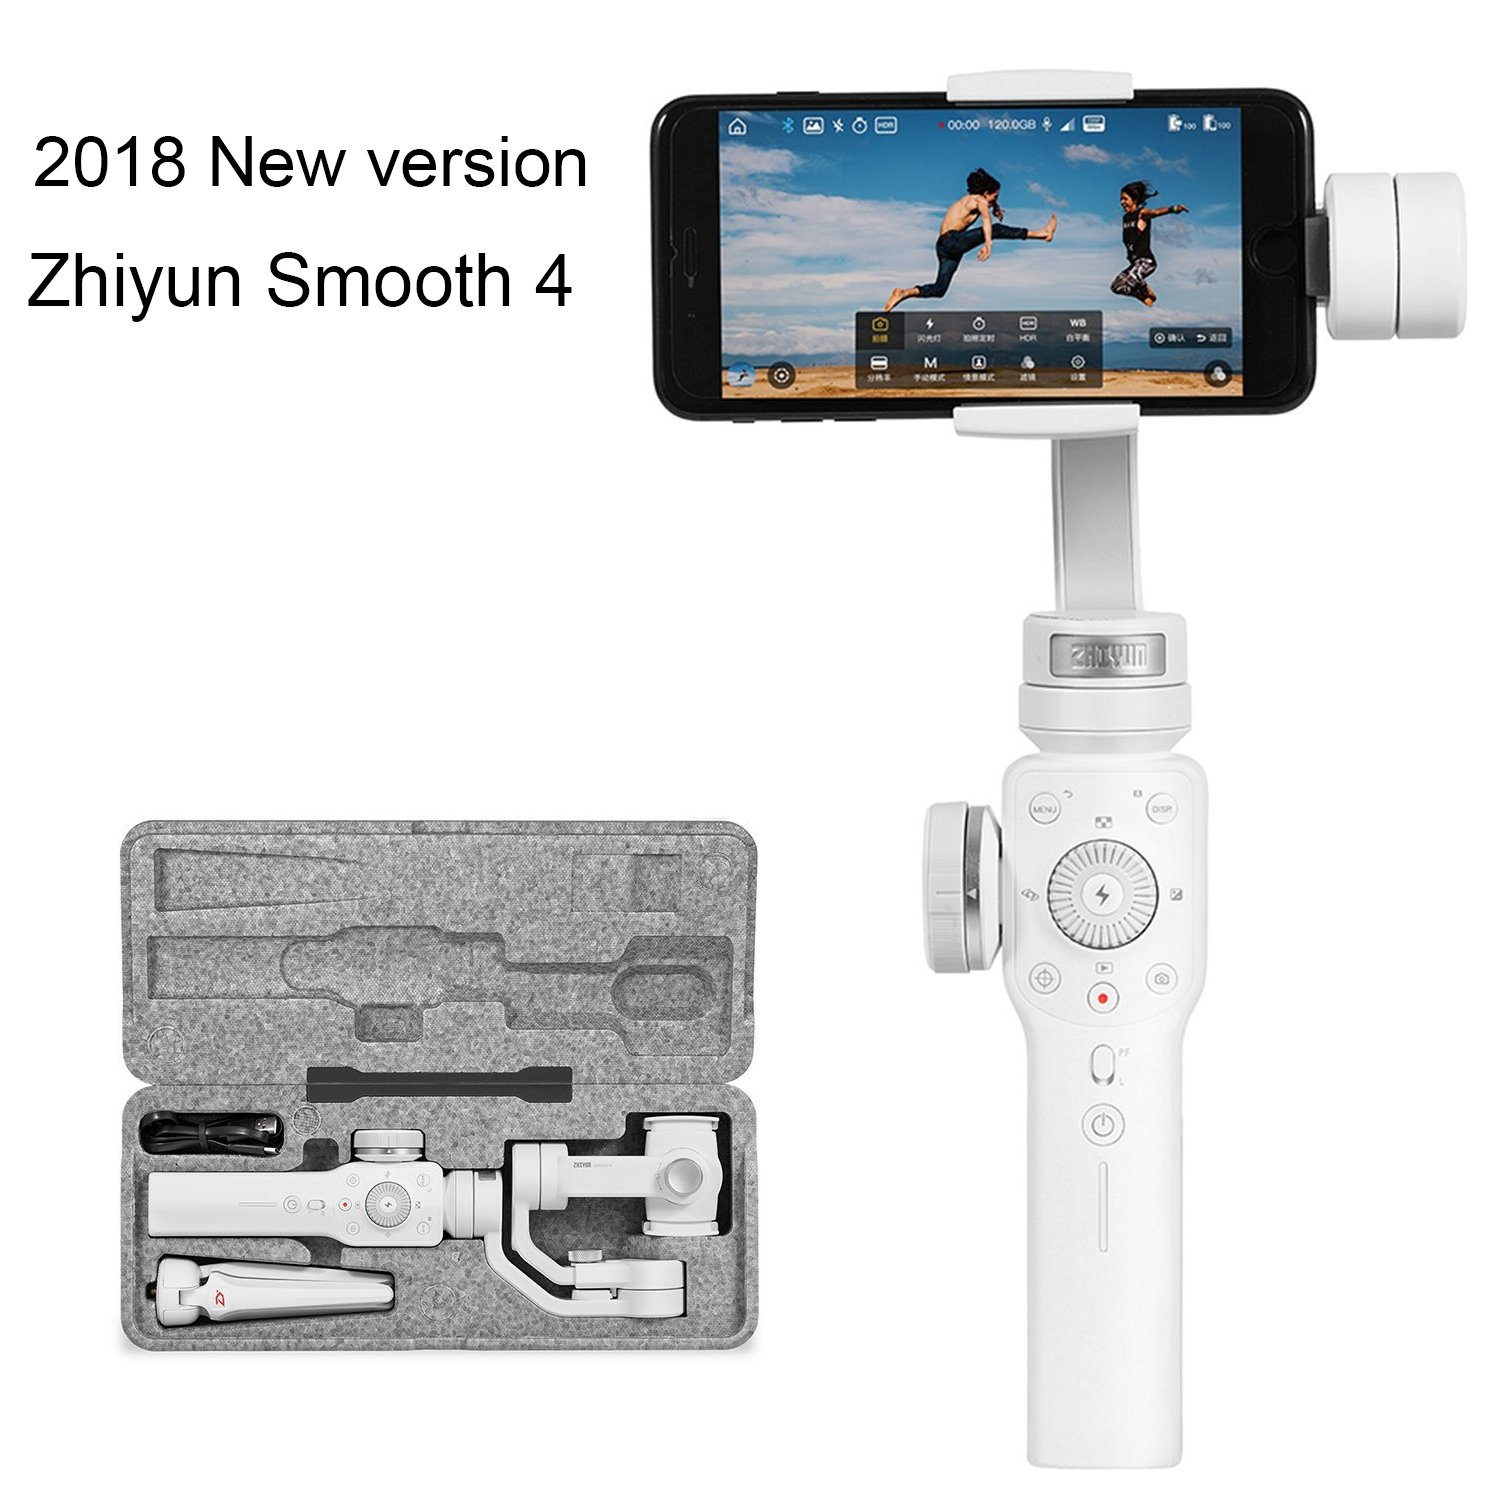 2018 Verson White S9 S8 S8 S7 S6 Q2 Edge New Smooth-Q//III Zhiyun Smooth 4 3-Axis Handheld Gimbal Stabilizer w//Focus Zoom Capability for Smartphone Like iPhone X 8 Plus 7 6 SE Samsung Galaxy S9